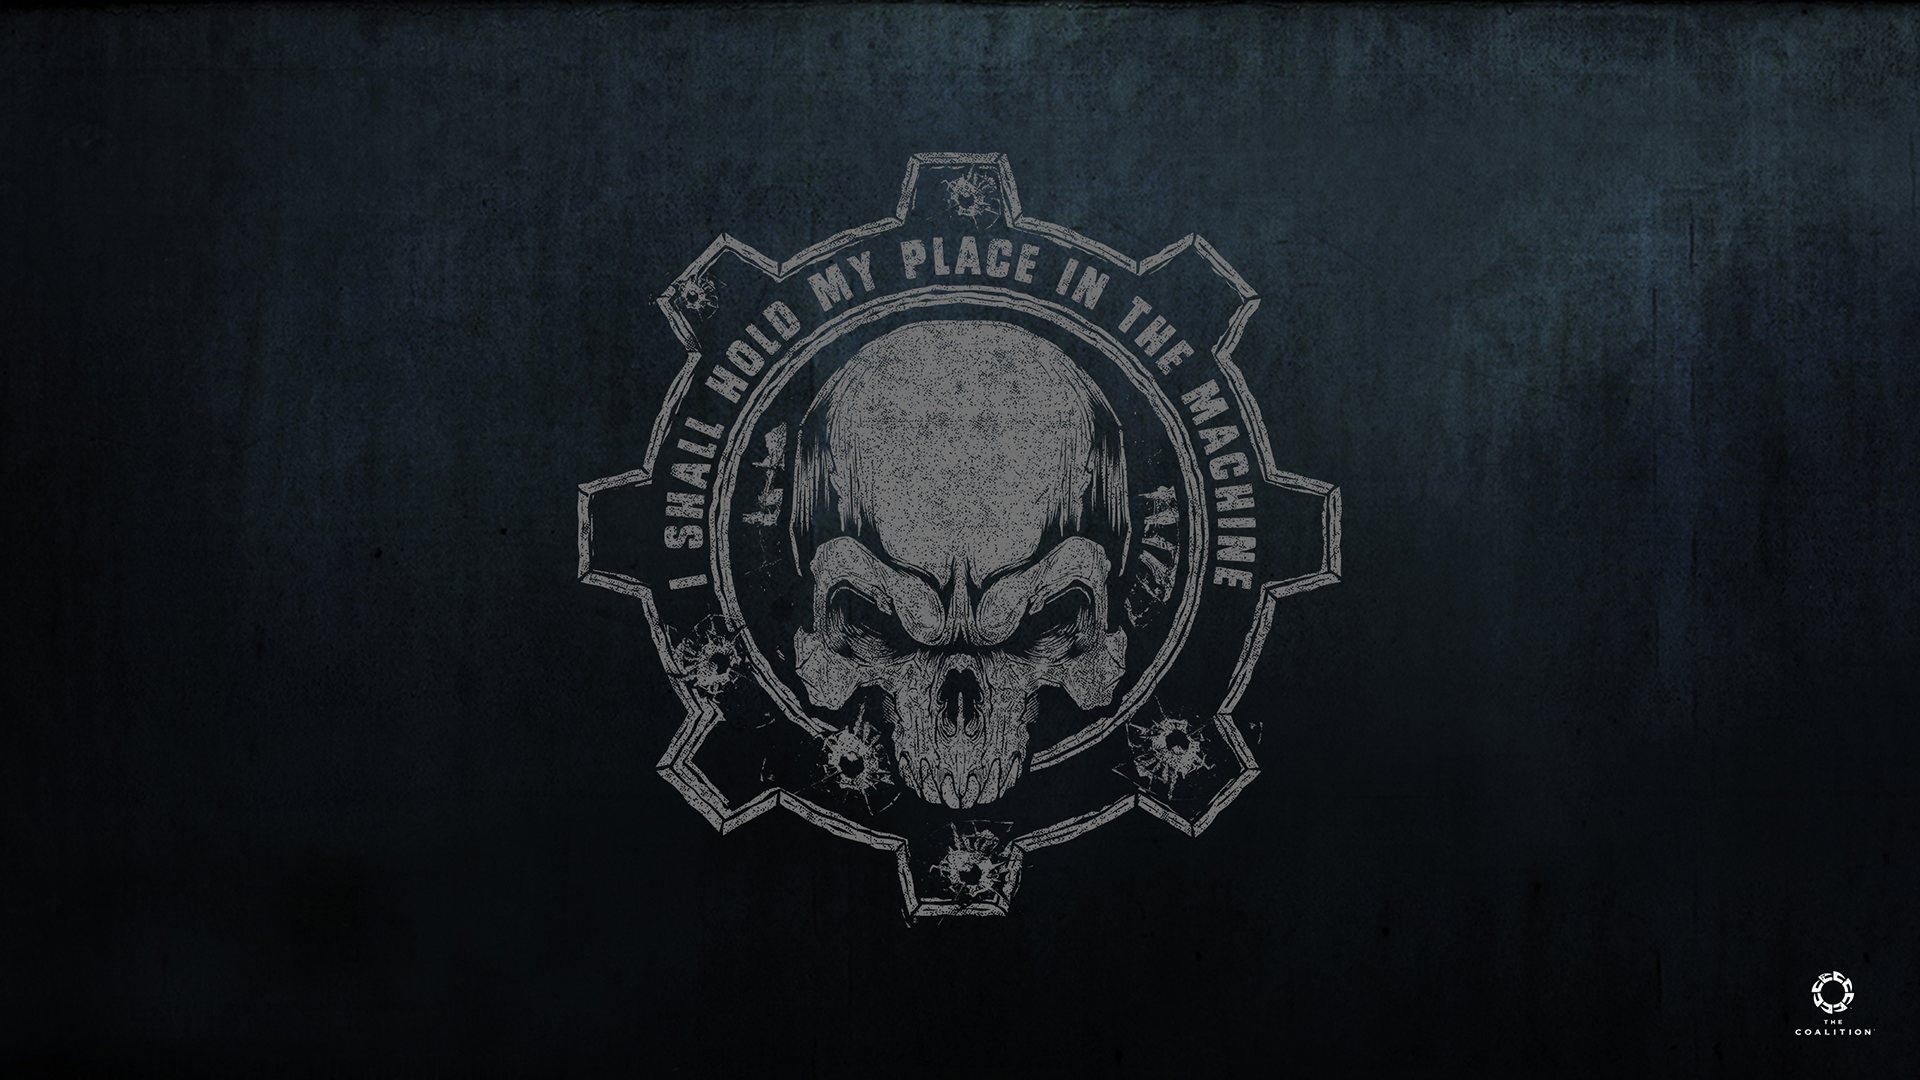 Gears Of War - Official Site